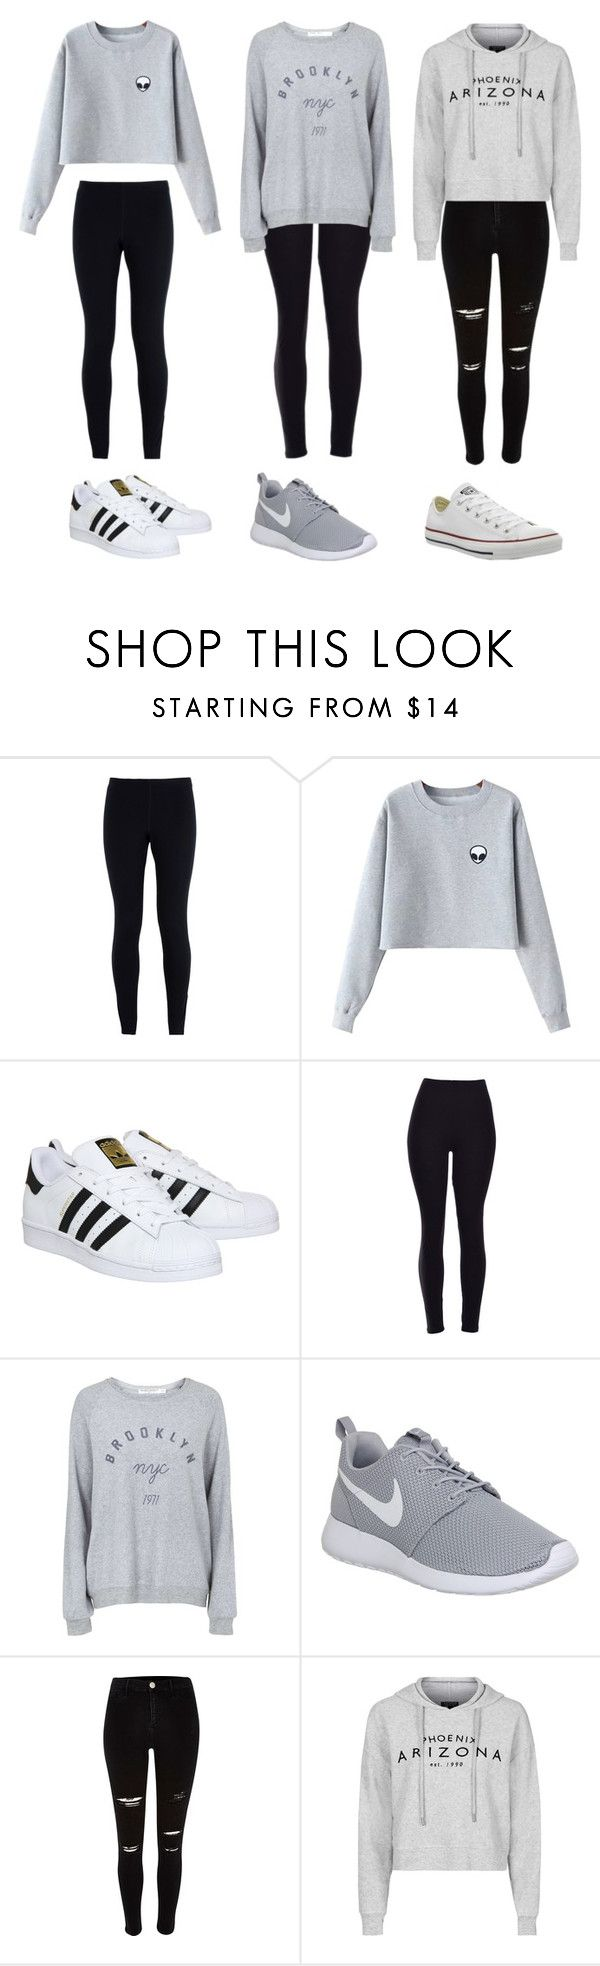 """""""3 cute outfits"""" by olivia-clarkk ❤ liked on Polyvore featuring NIKE, Chicnova Fashion, adidas, Topshop, River Island and Converse"""